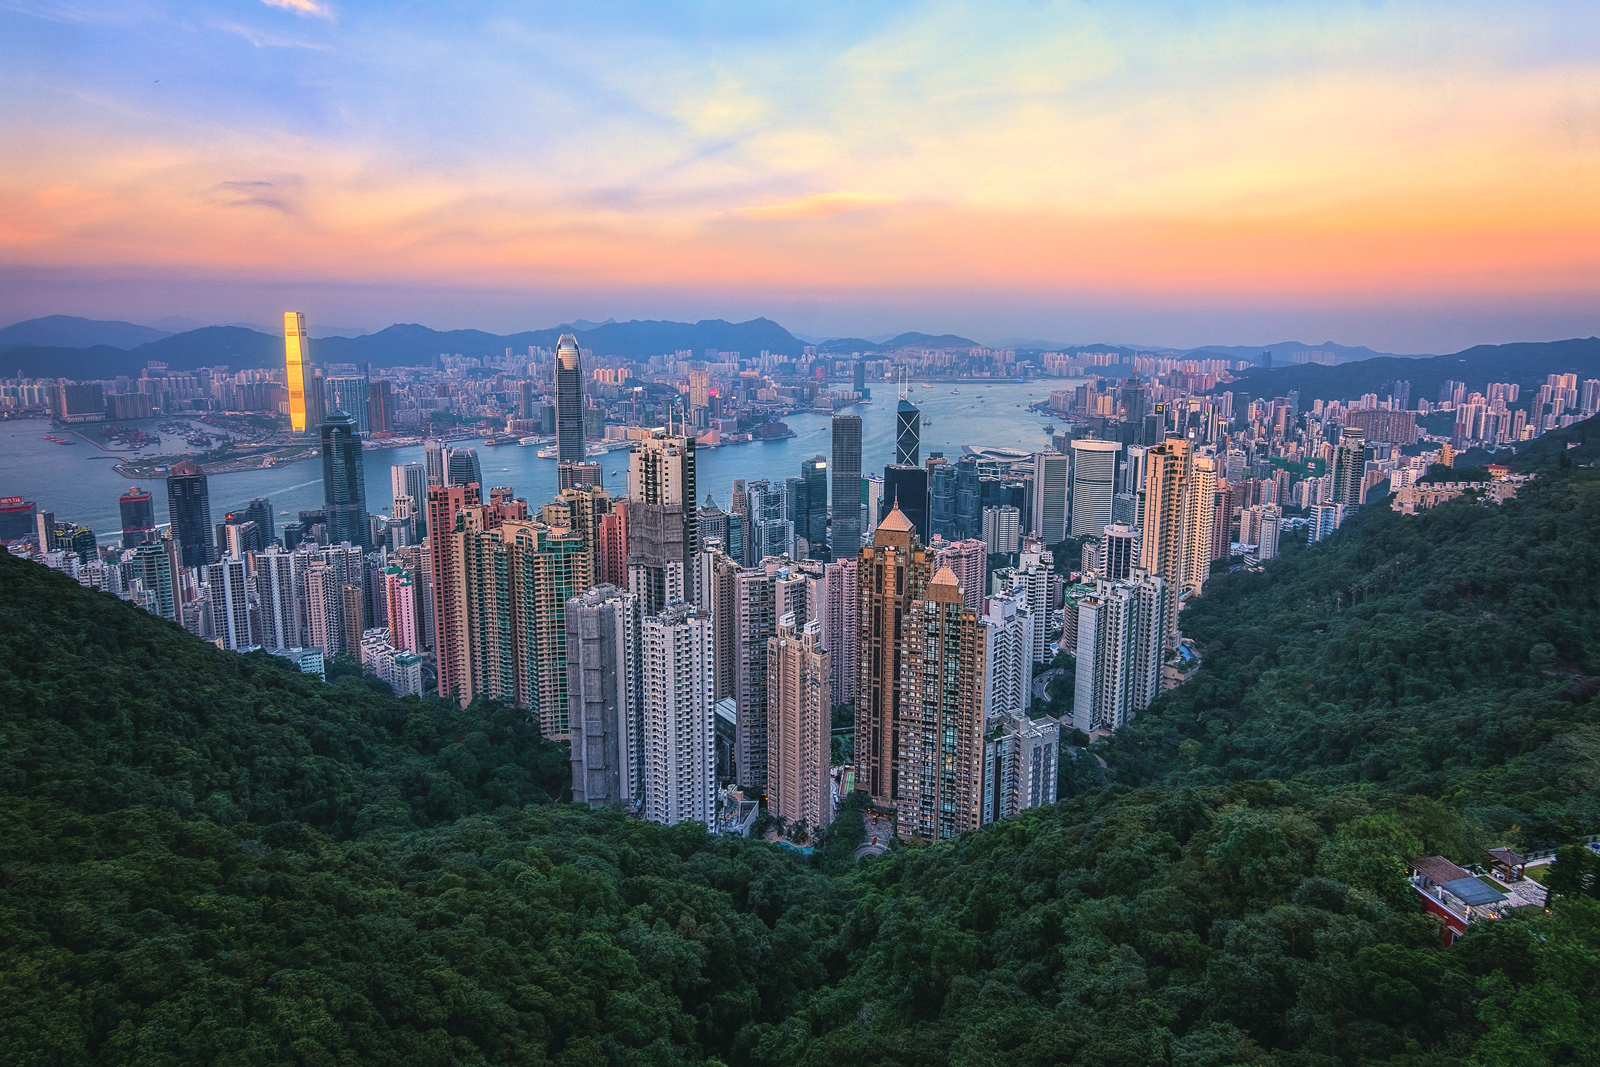 Sunset View from The Peak Hong Kong